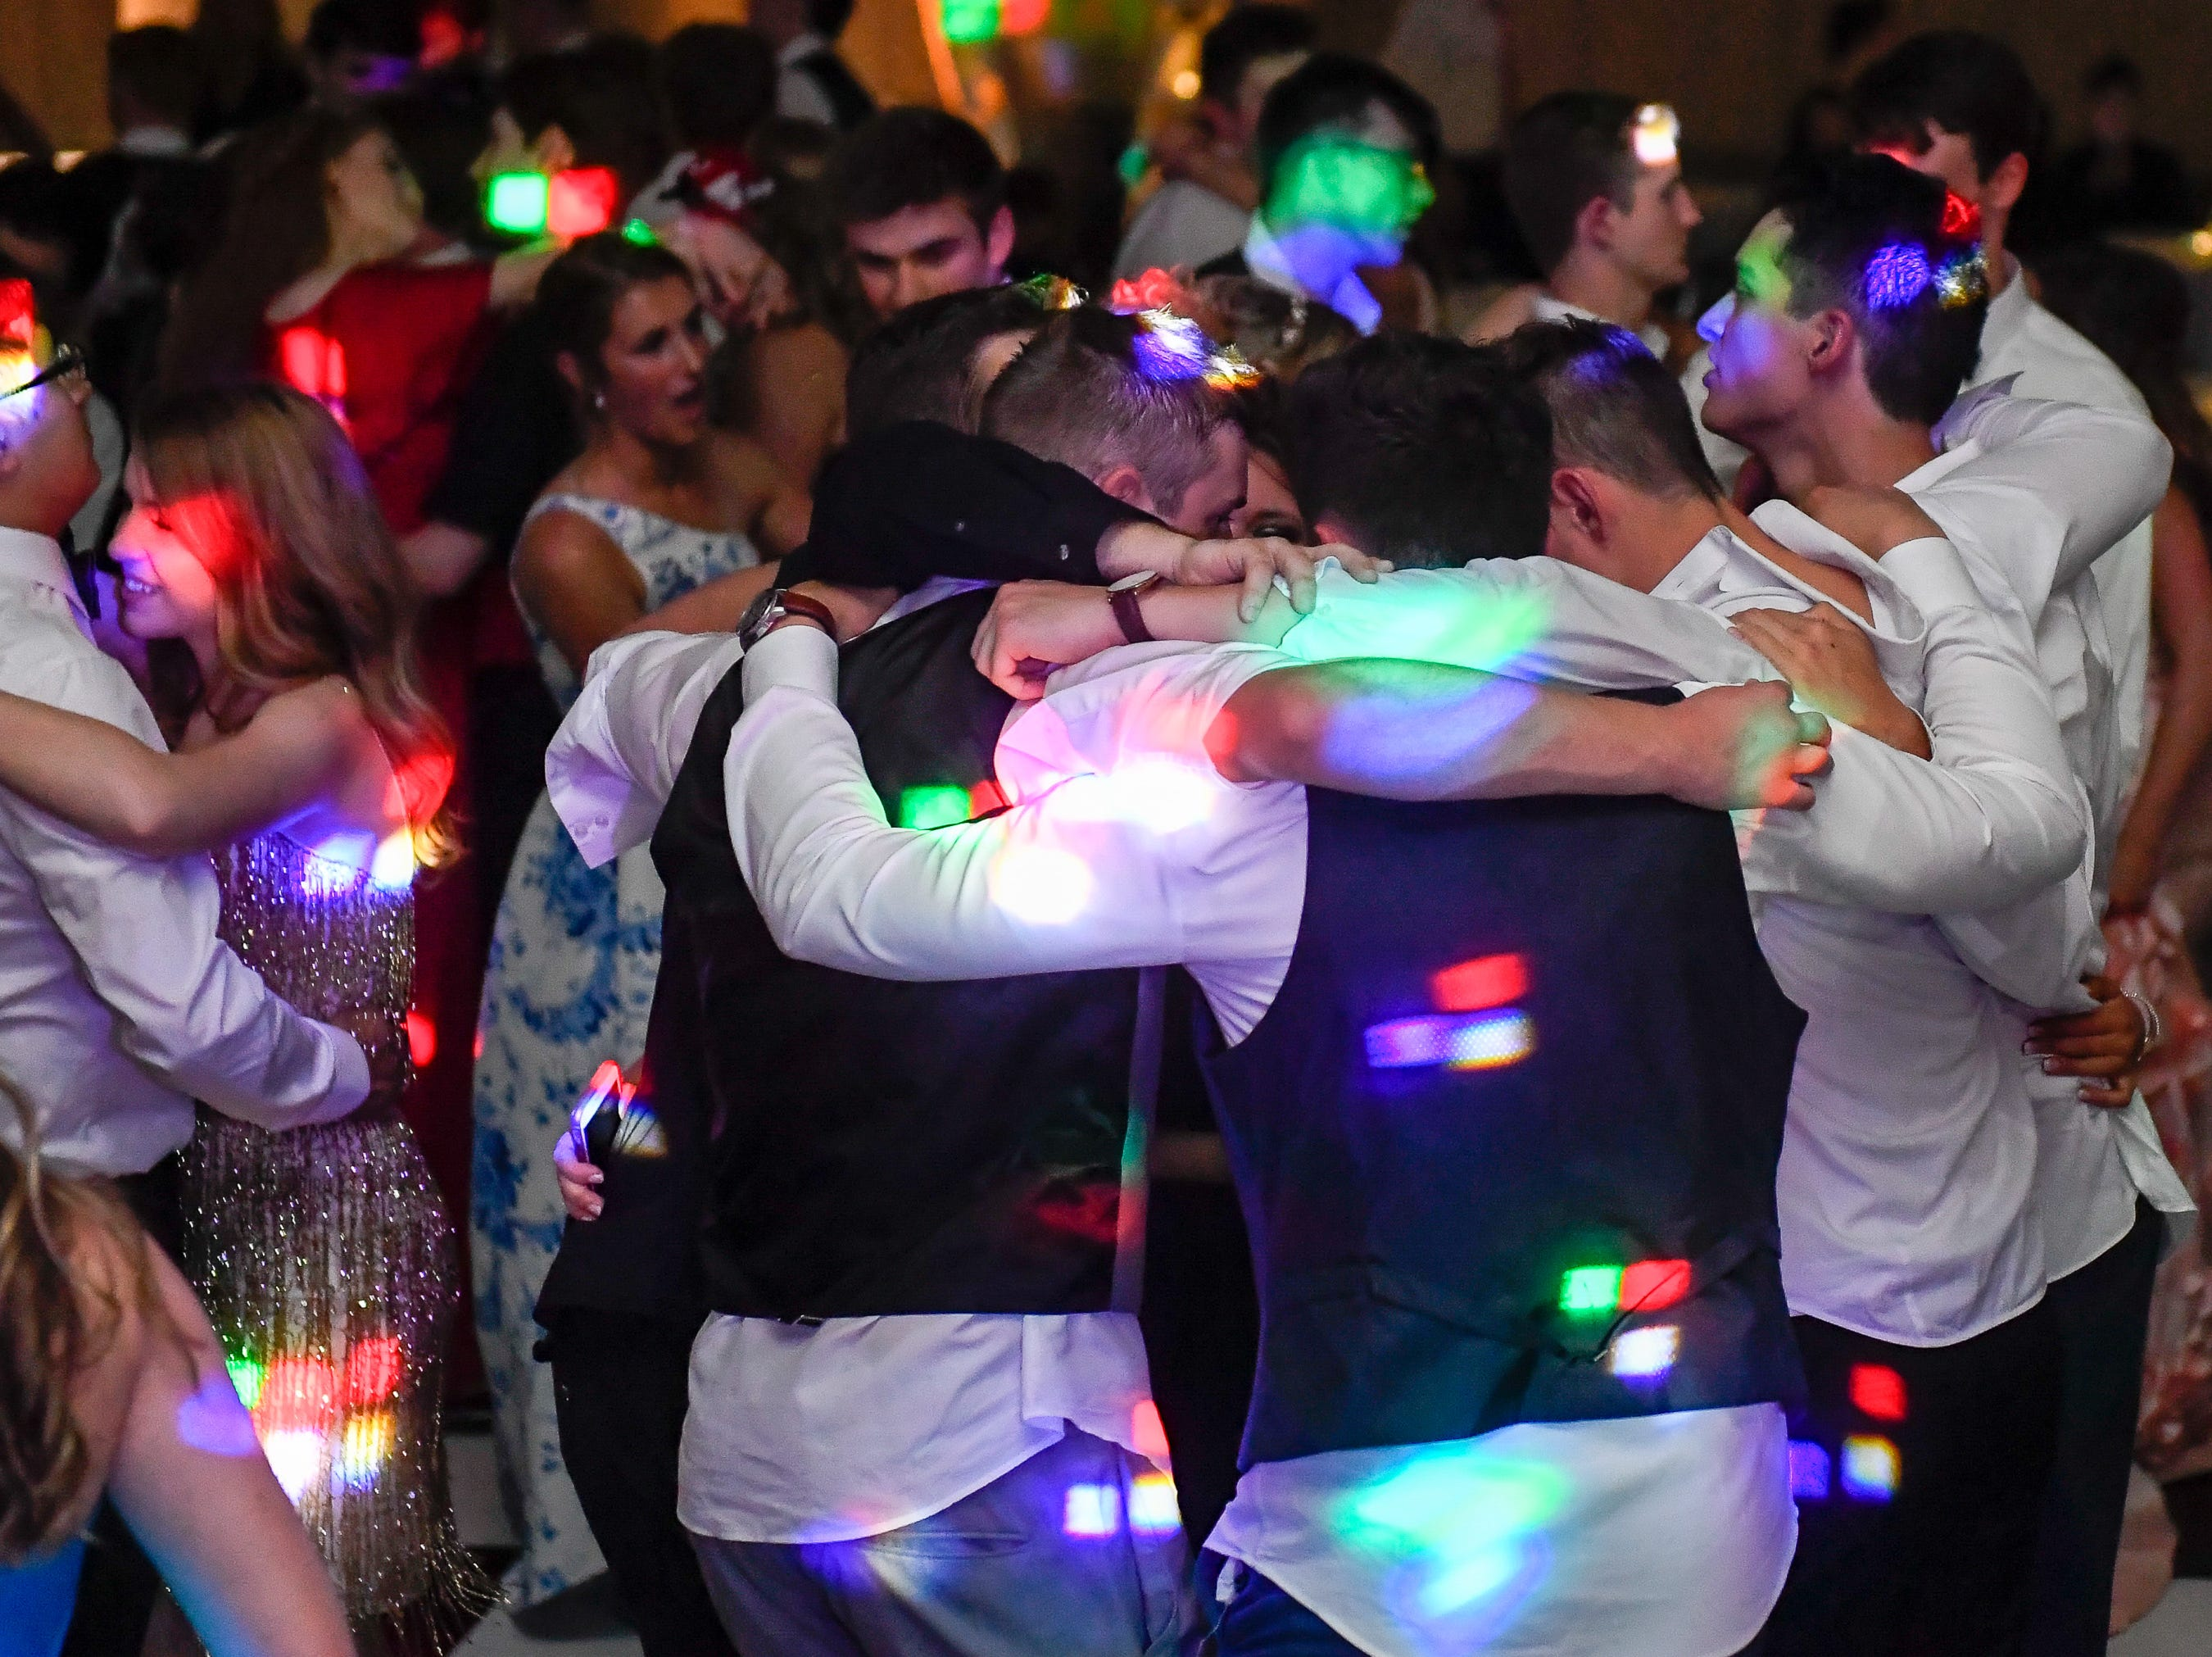 Dance floor action at the Memorial High School prom, held at the Old National Events Center Plaza Saturday, April 27, 2019.